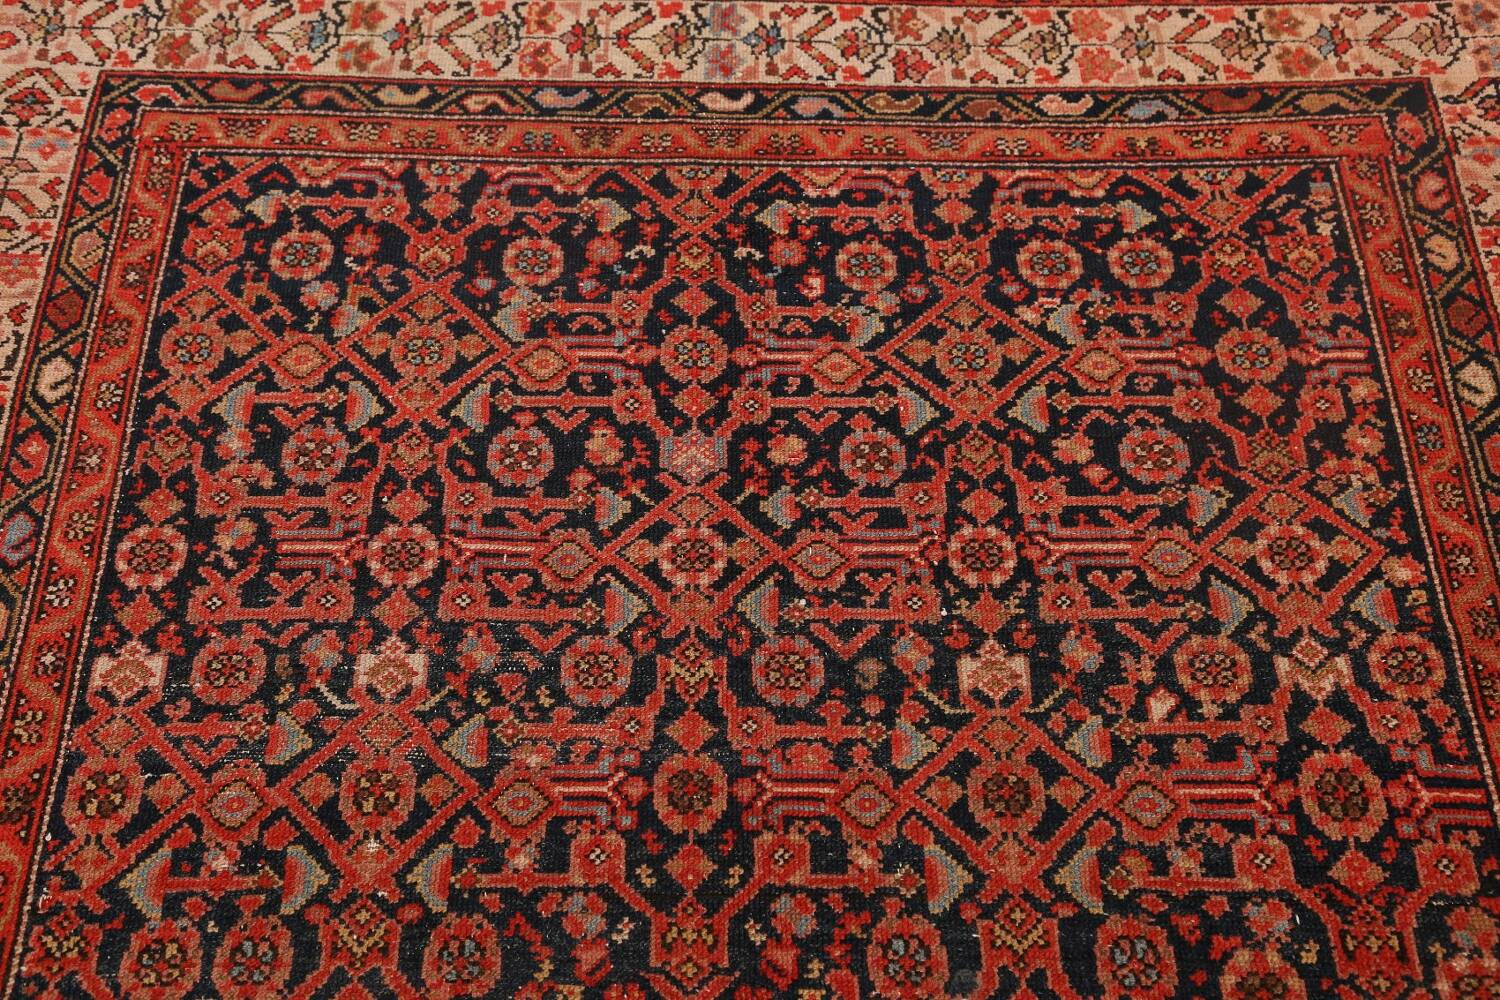 Pre-1900 Antique Malayer Vegetable Dye Persian Area Rug 5x7 image 10